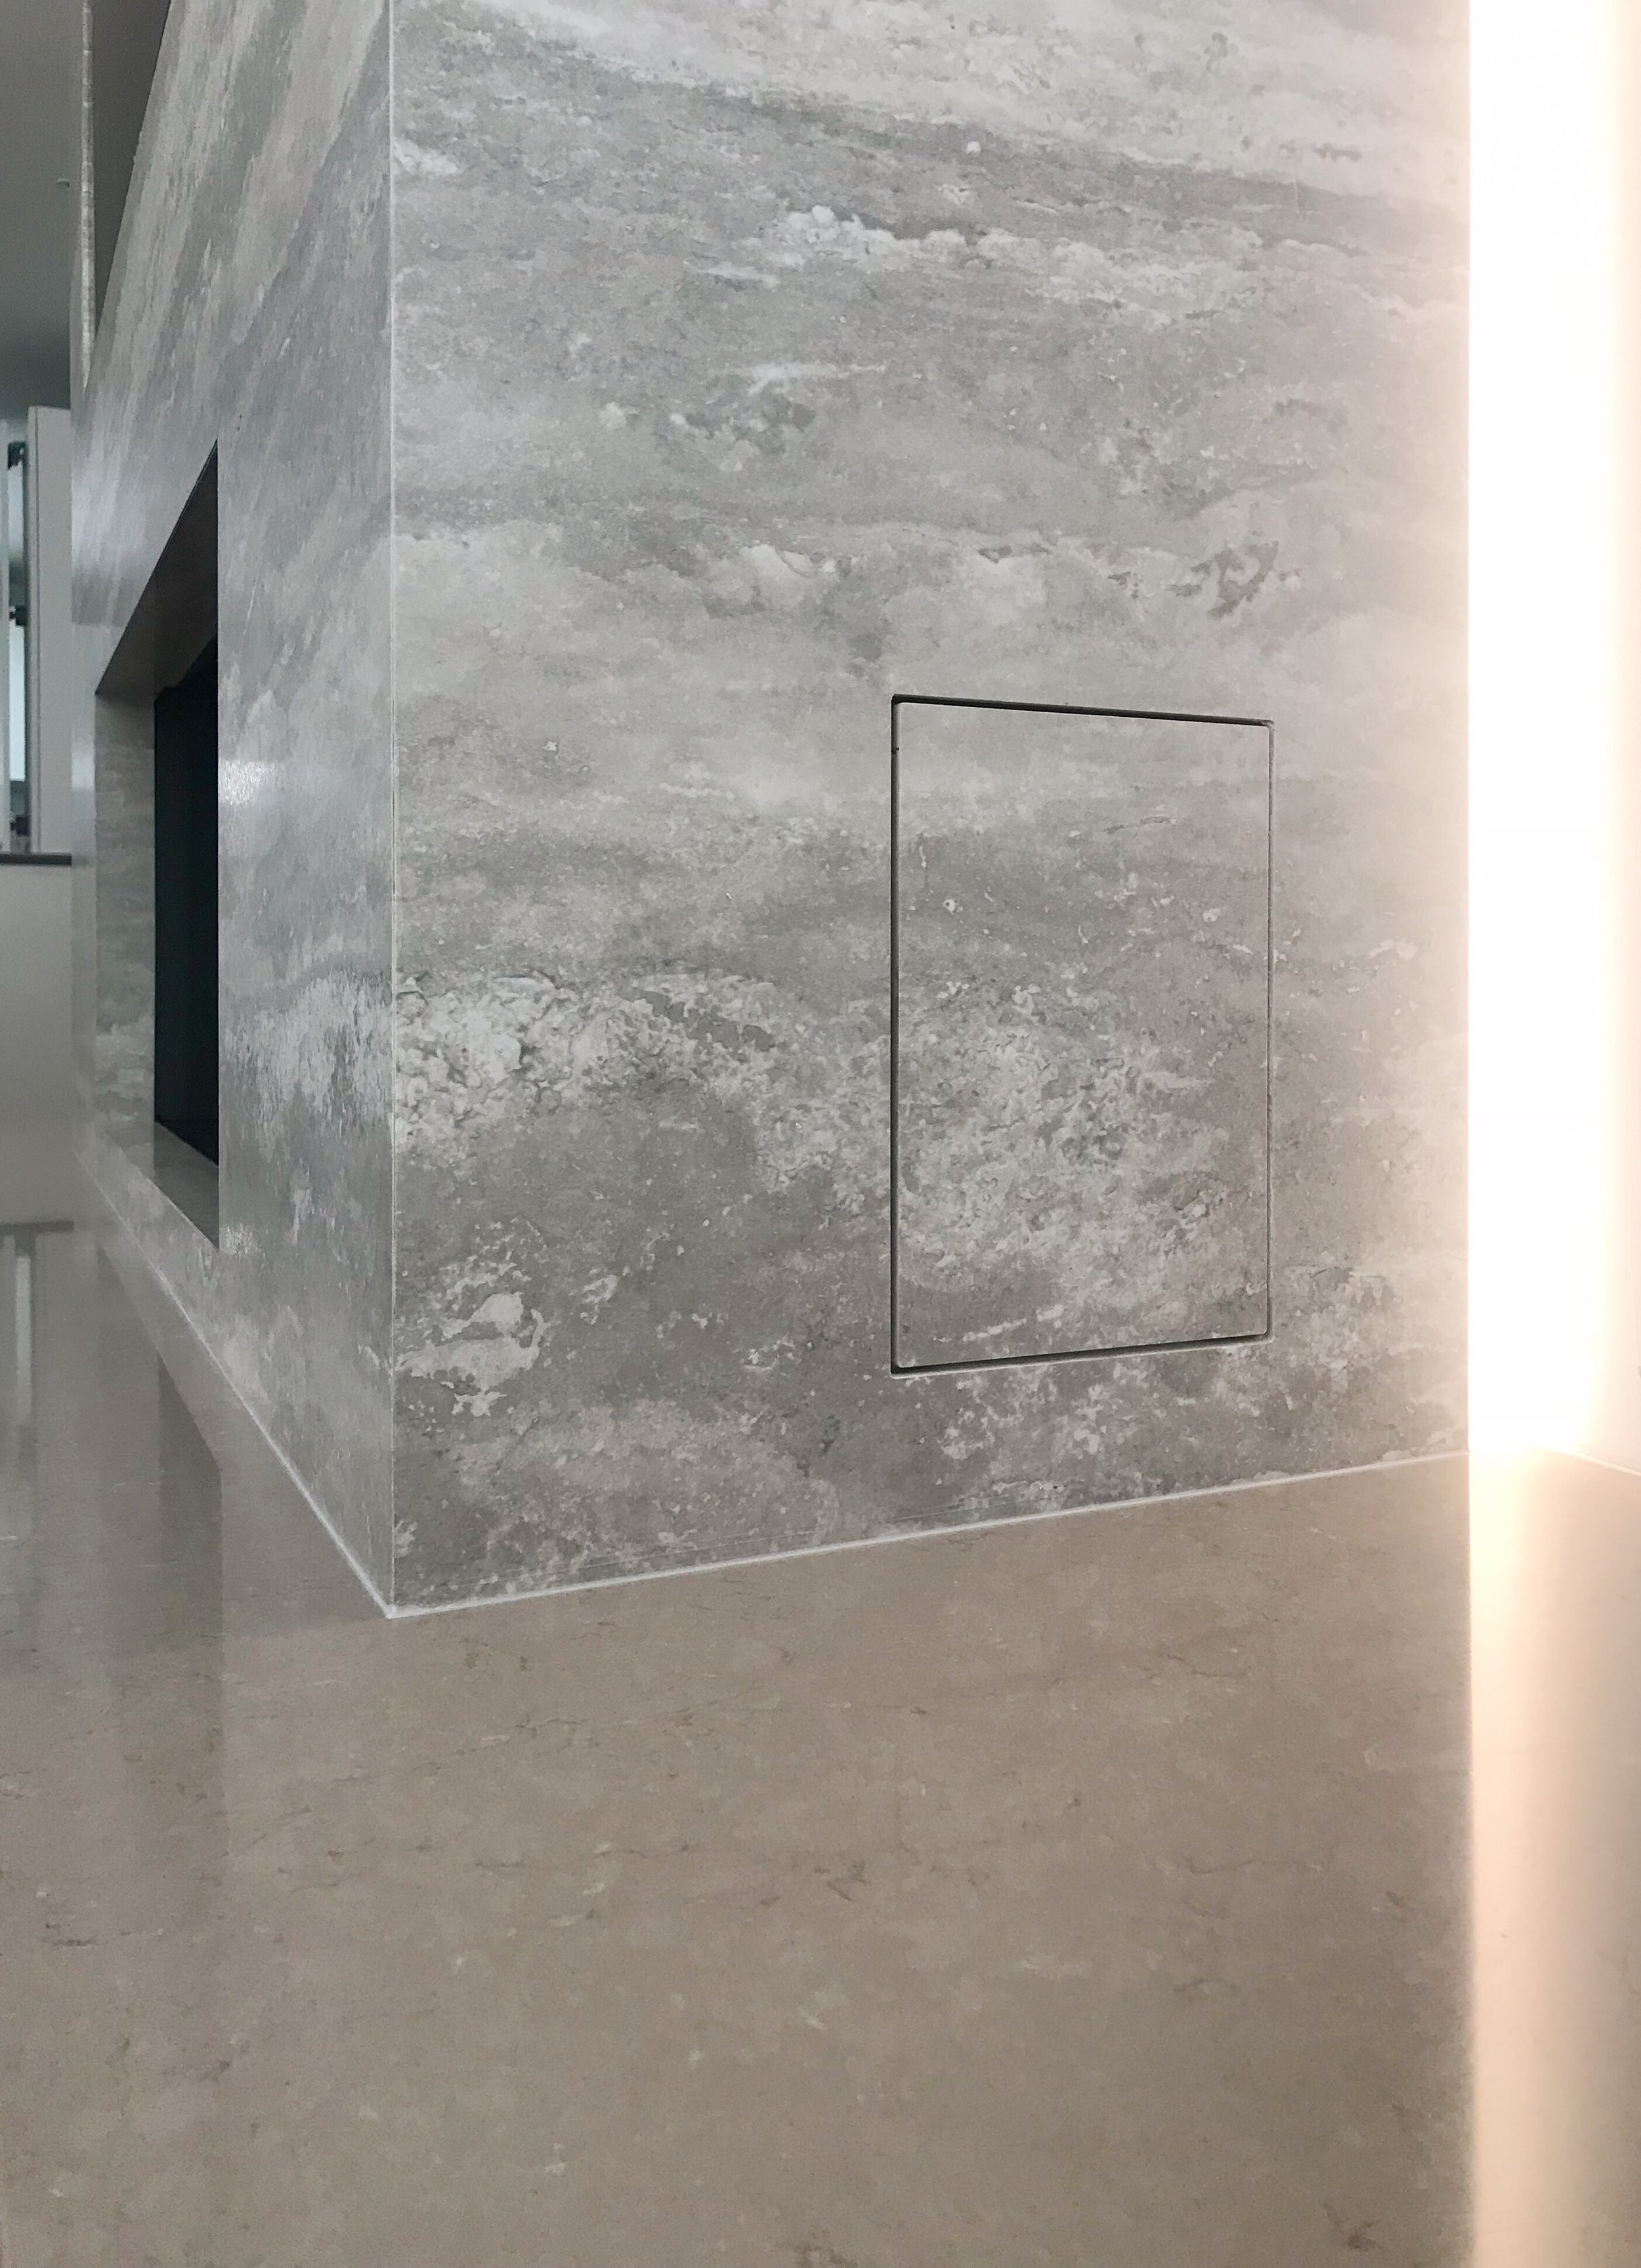 The access panel was waterjet cut and secured by magnets, however notice the material veining runs through to make it as seamless as possible